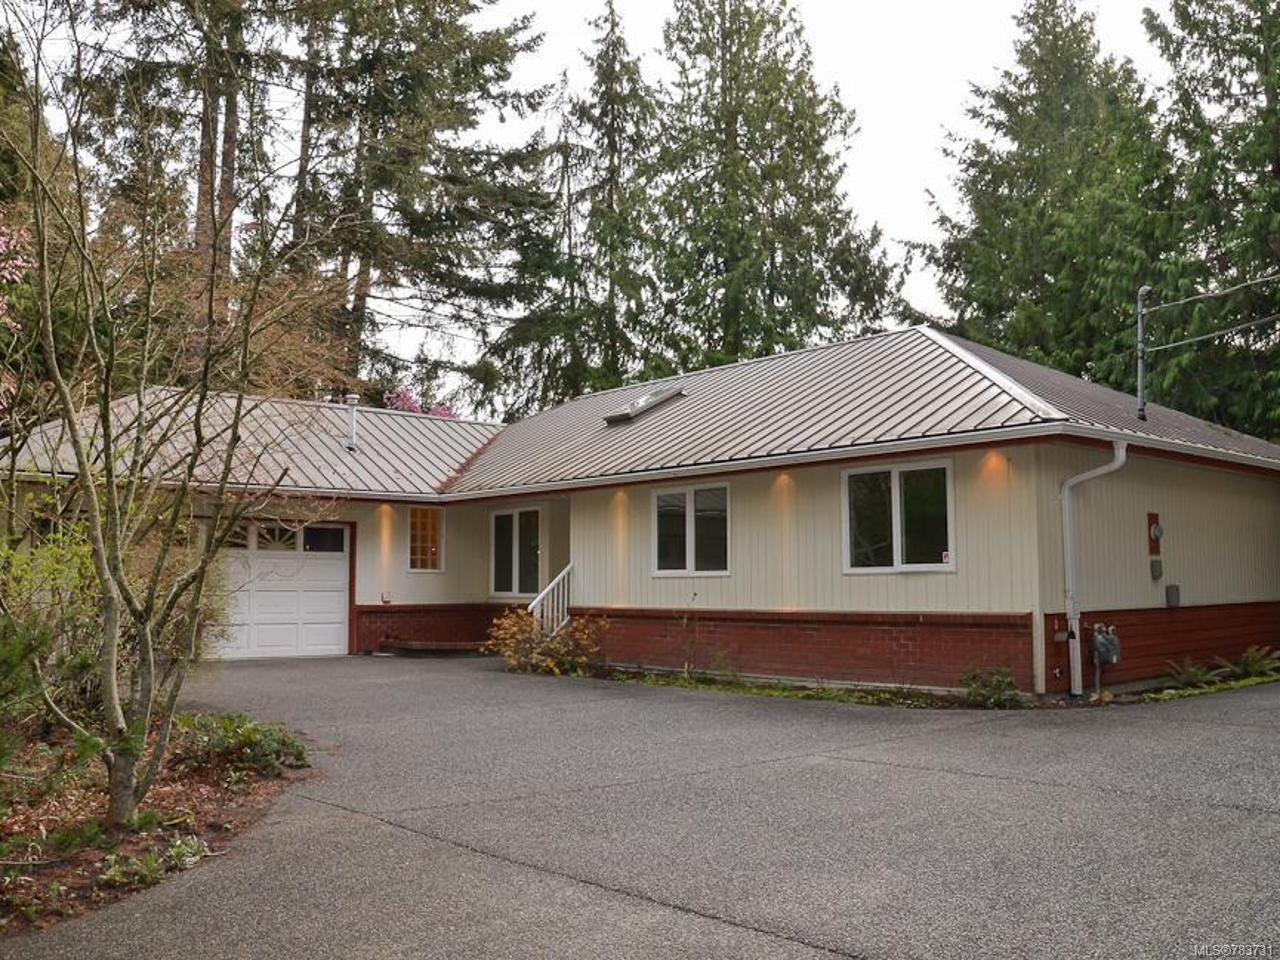 Main Photo: 780 Terrien Way in PARKSVILLE: PQ Parksville House for sale (Parksville/Qualicum)  : MLS®# 783731